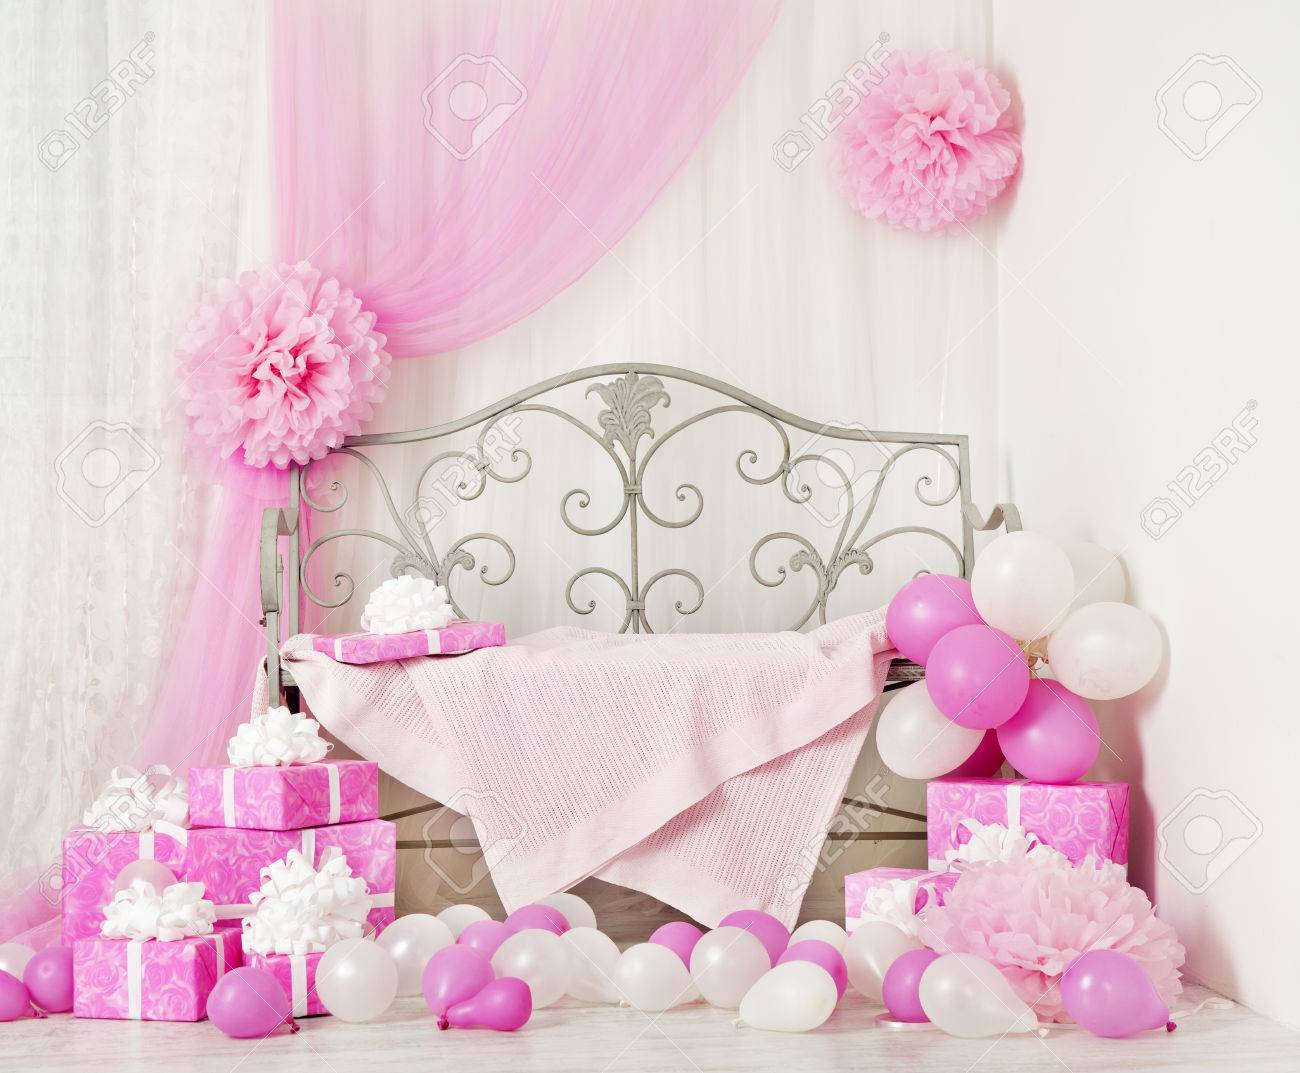 birthday party room background with gift boxes kids celebration